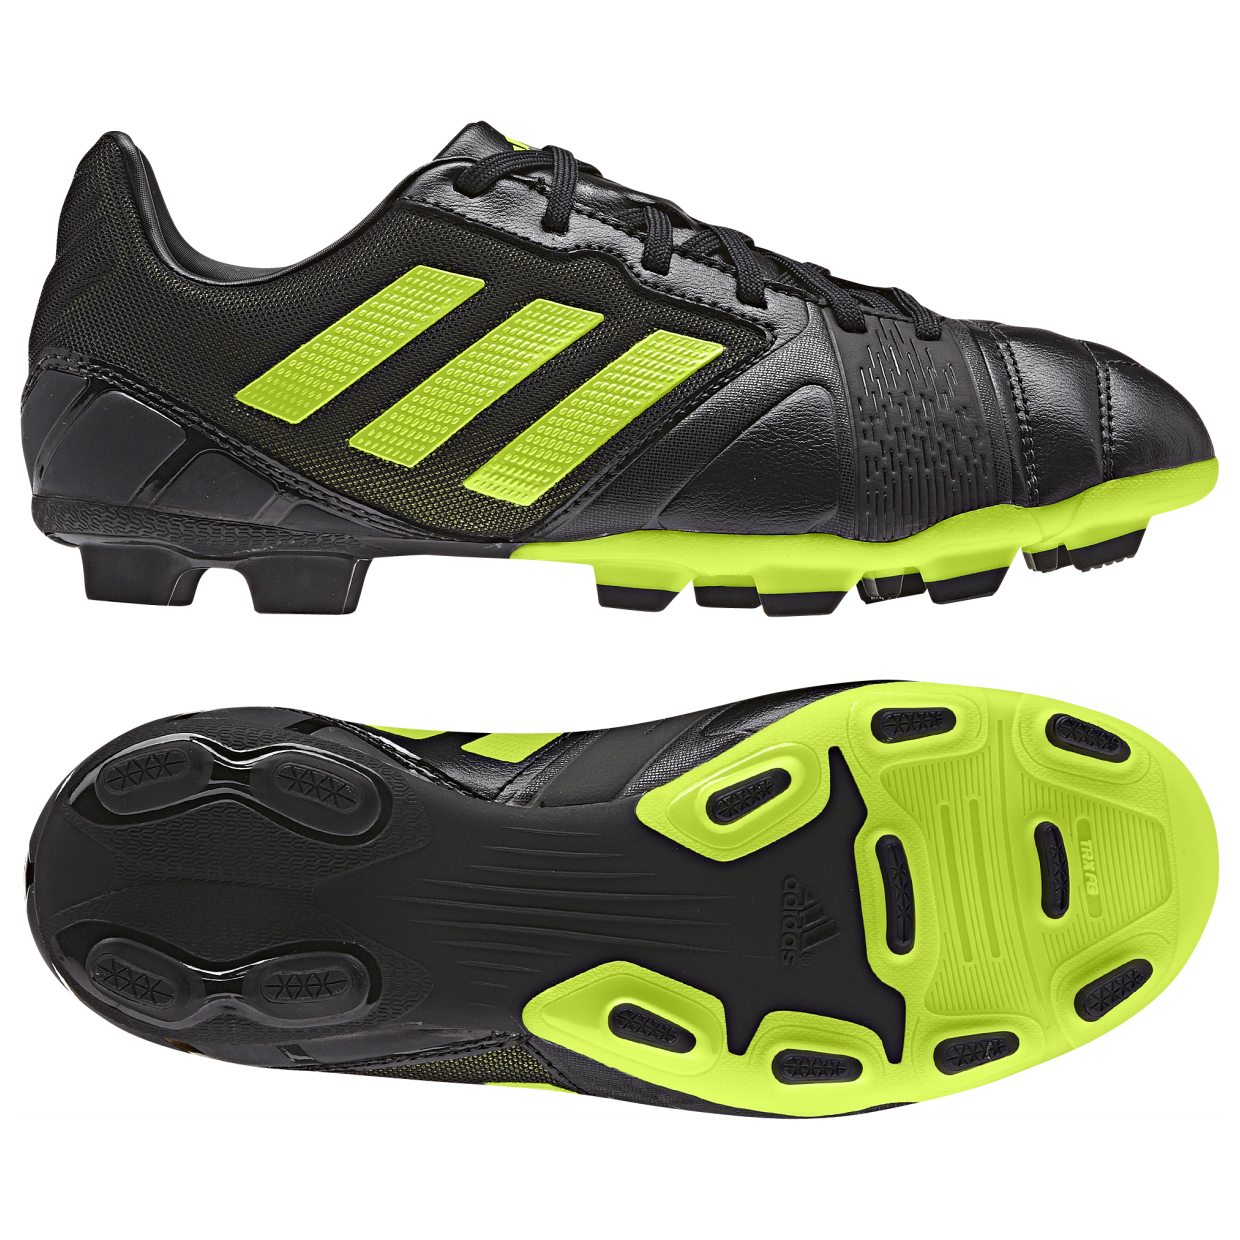 Adidas Nitrocharge 2.0 TRX Firm Ground Football Boots  Kids Black